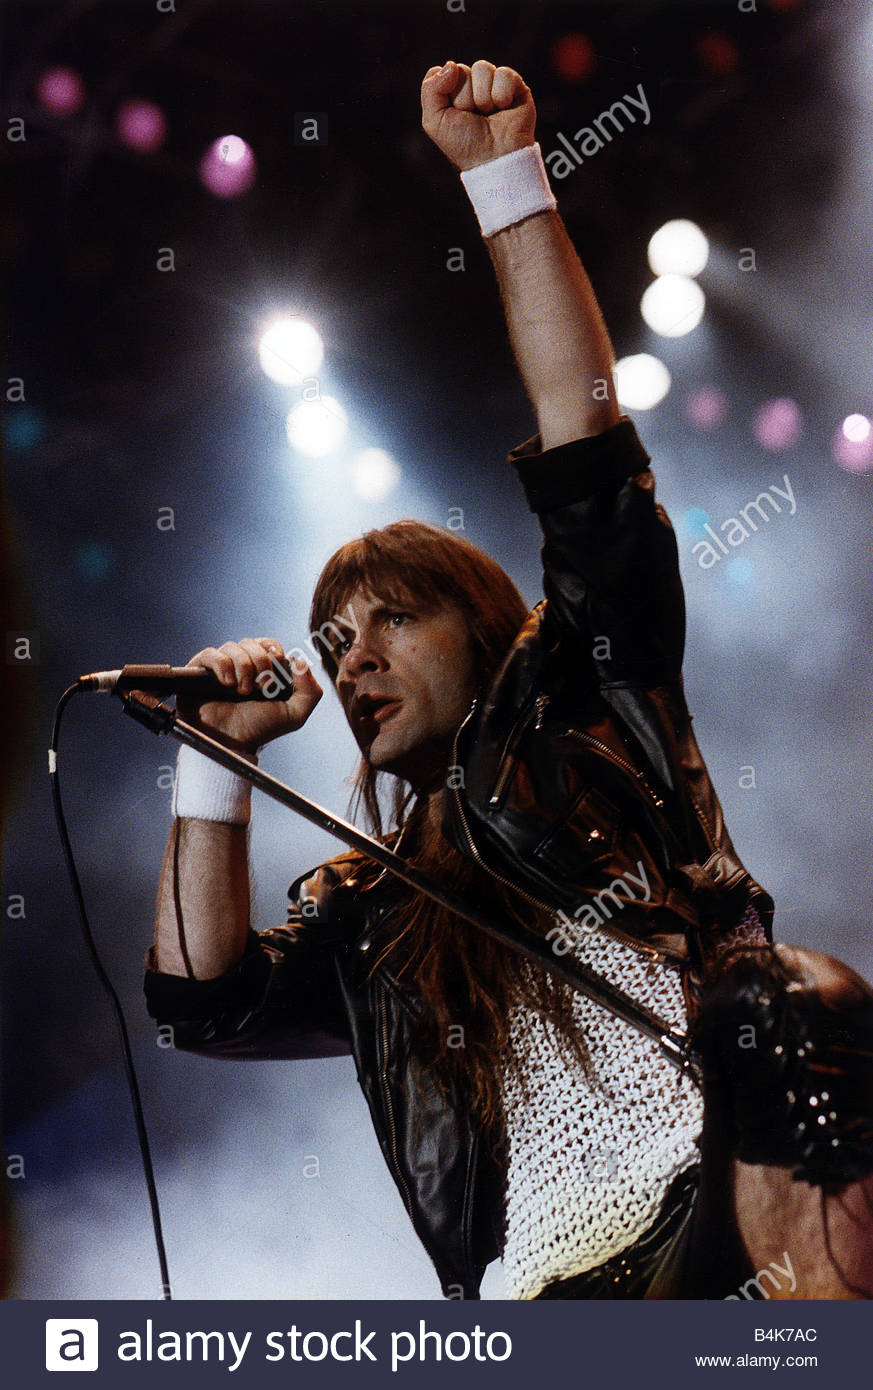 The former lead singer of the group Mirage failed to prove in court that she was not an alcoholic 03.12.2012 33